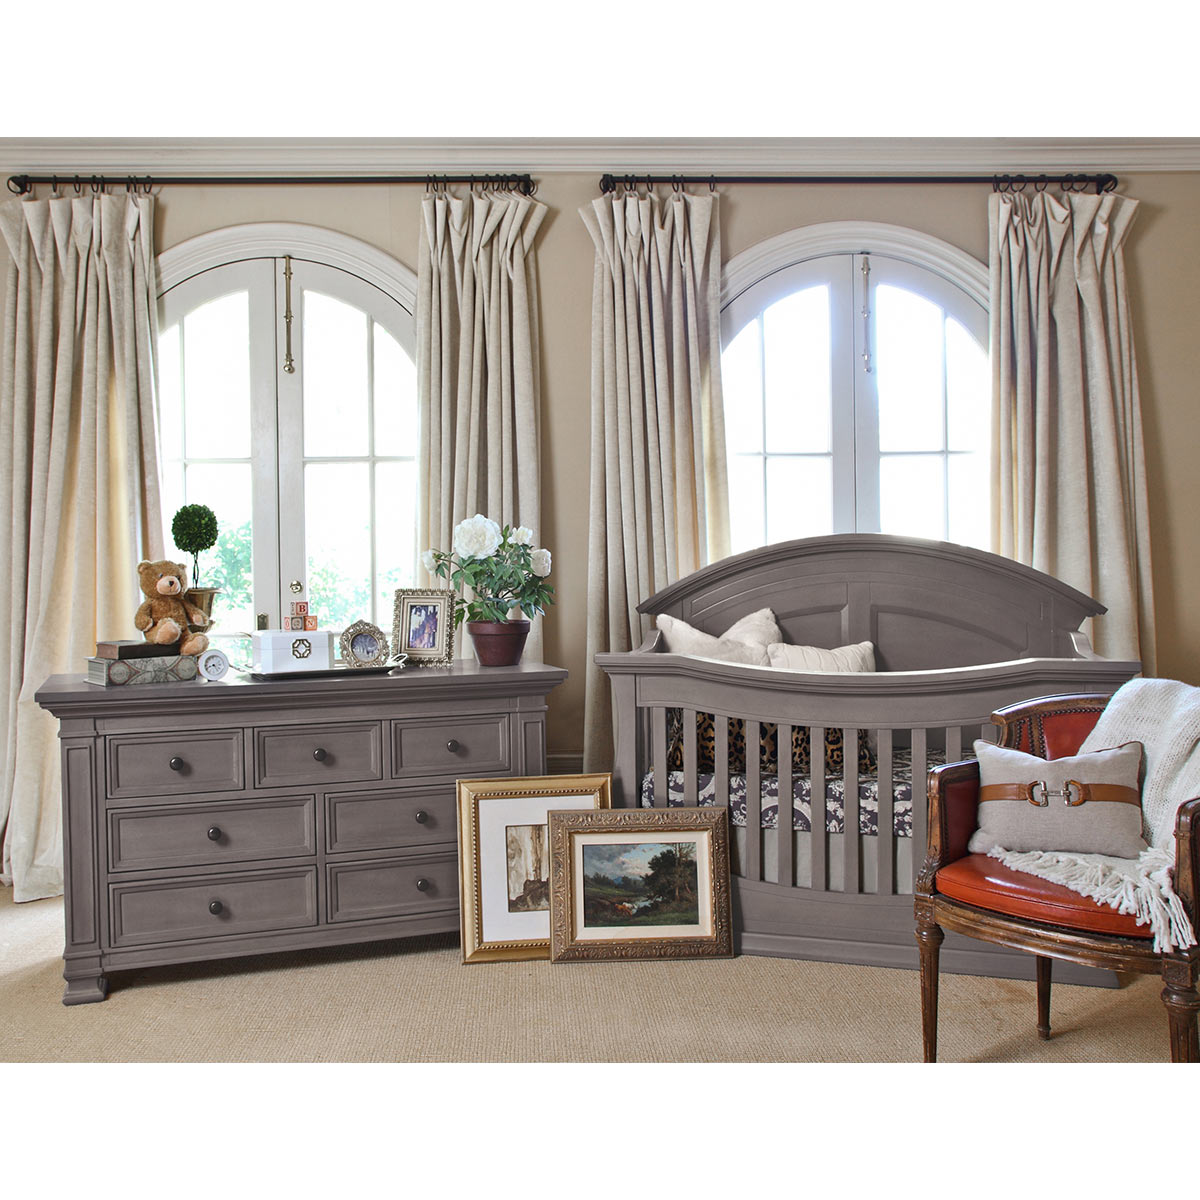 Upscale Toddler Bed Washed Grey Free Shipping Million Dollar Baby Classic Wakefield Crib Toddler Bedconversion Kit Million Dollar Baby Classic Wakefield Crib baby Million Dollar Baby Crib